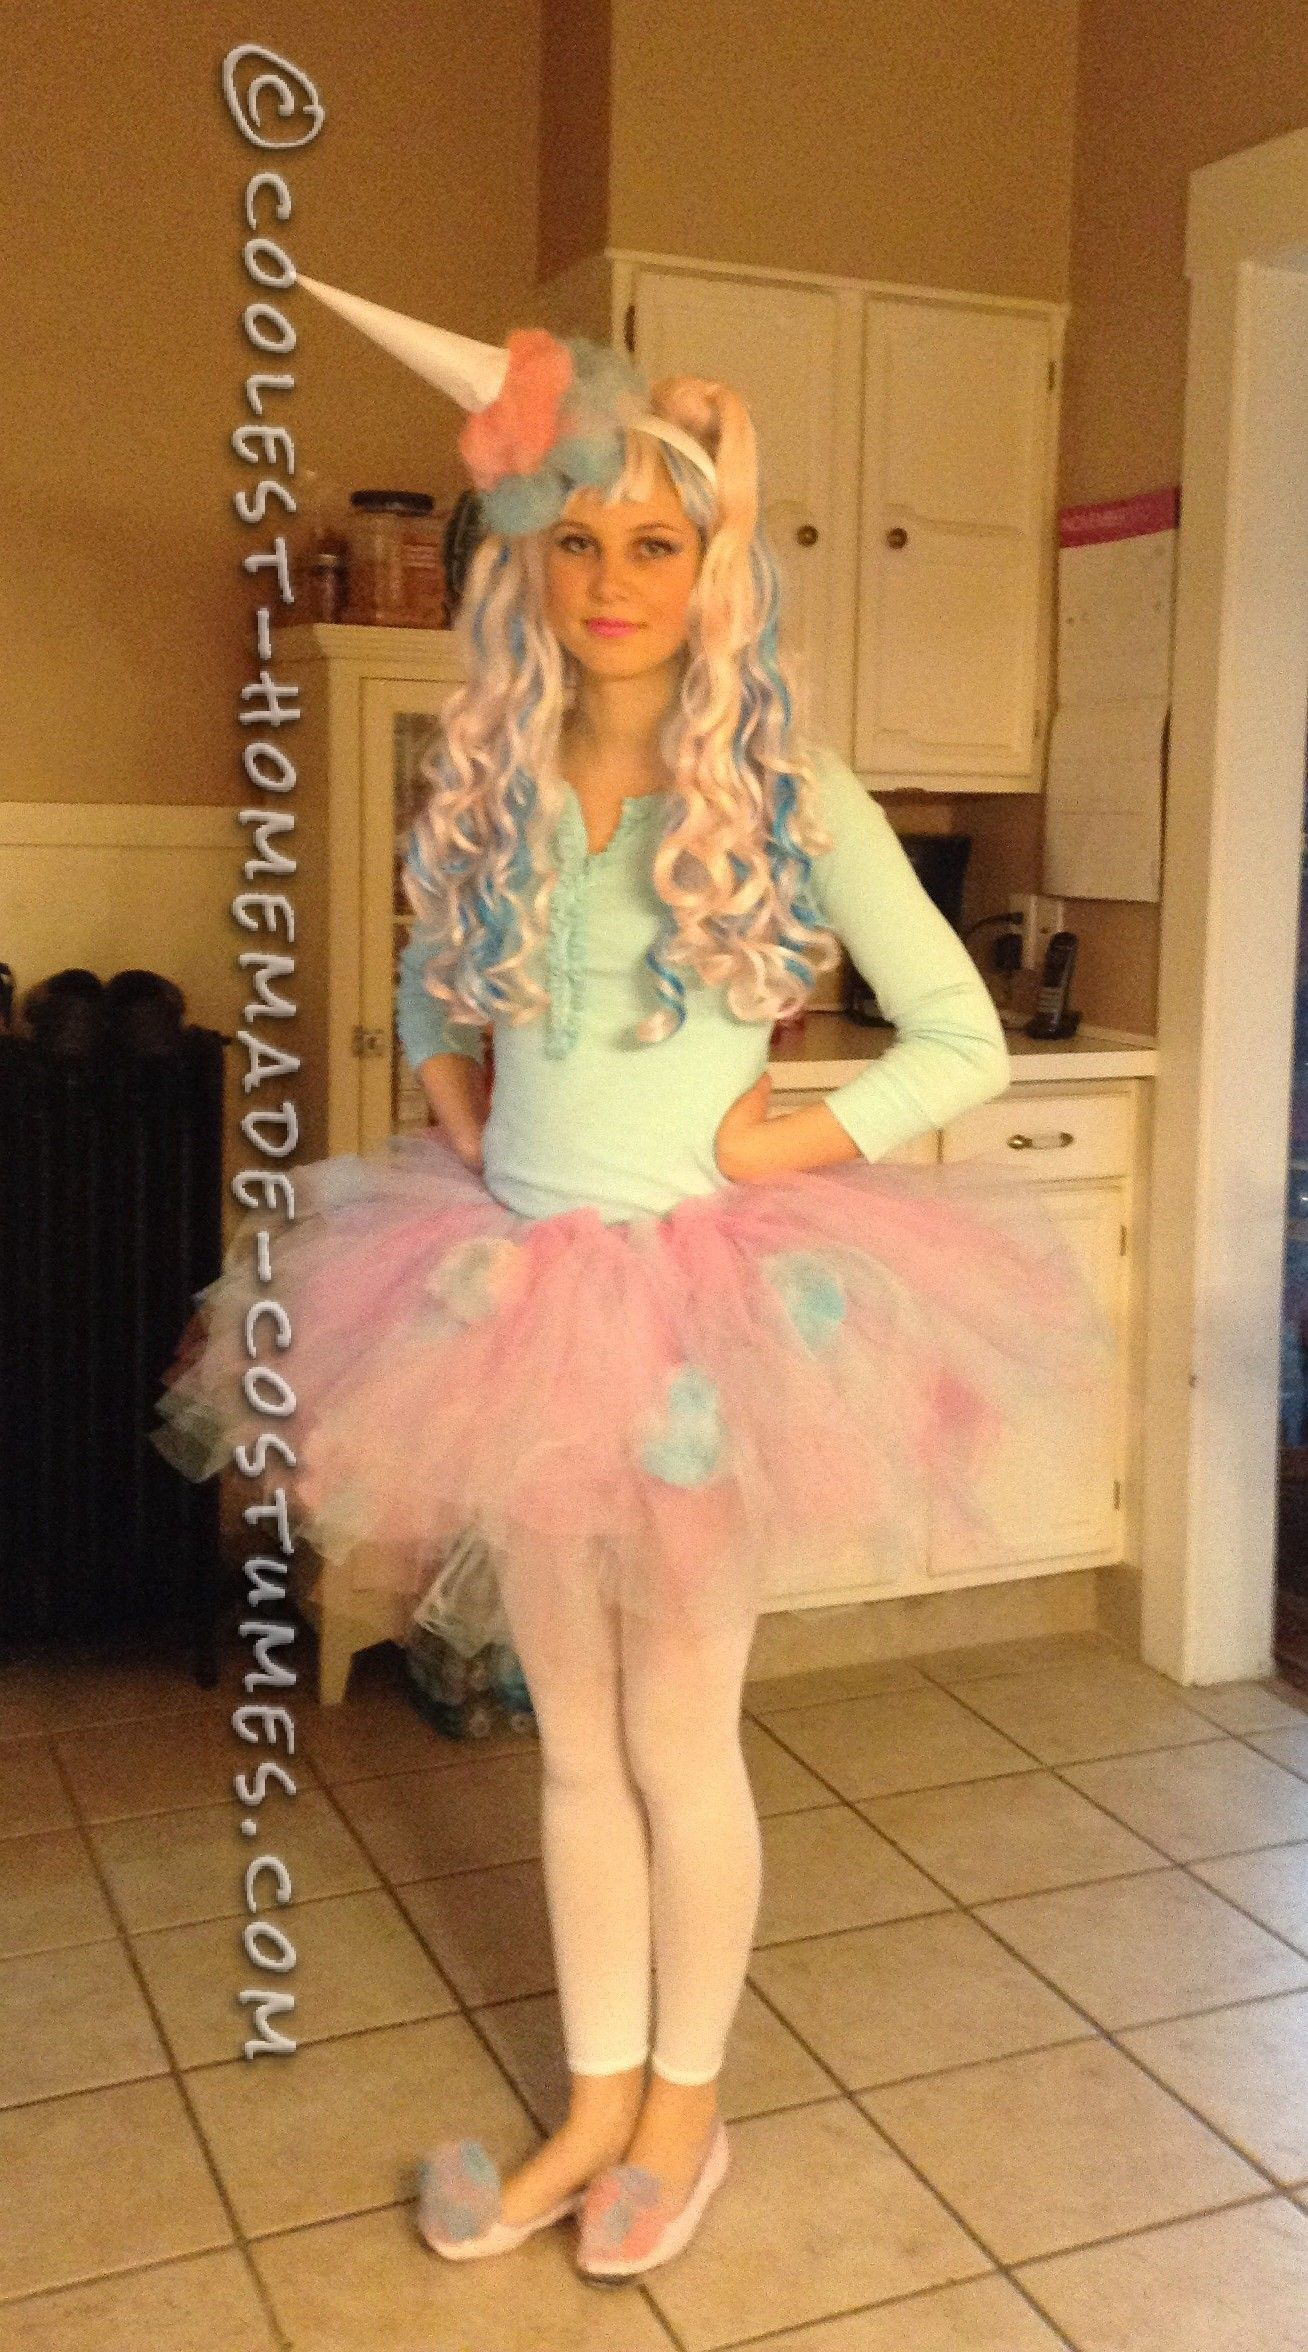 Cute and Sassy Homemade Cotton Candy Costume  sc 1 st  Pinterest & Cute and Sassy Homemade Cotton Candy Costume | Homemade cotton candy ...